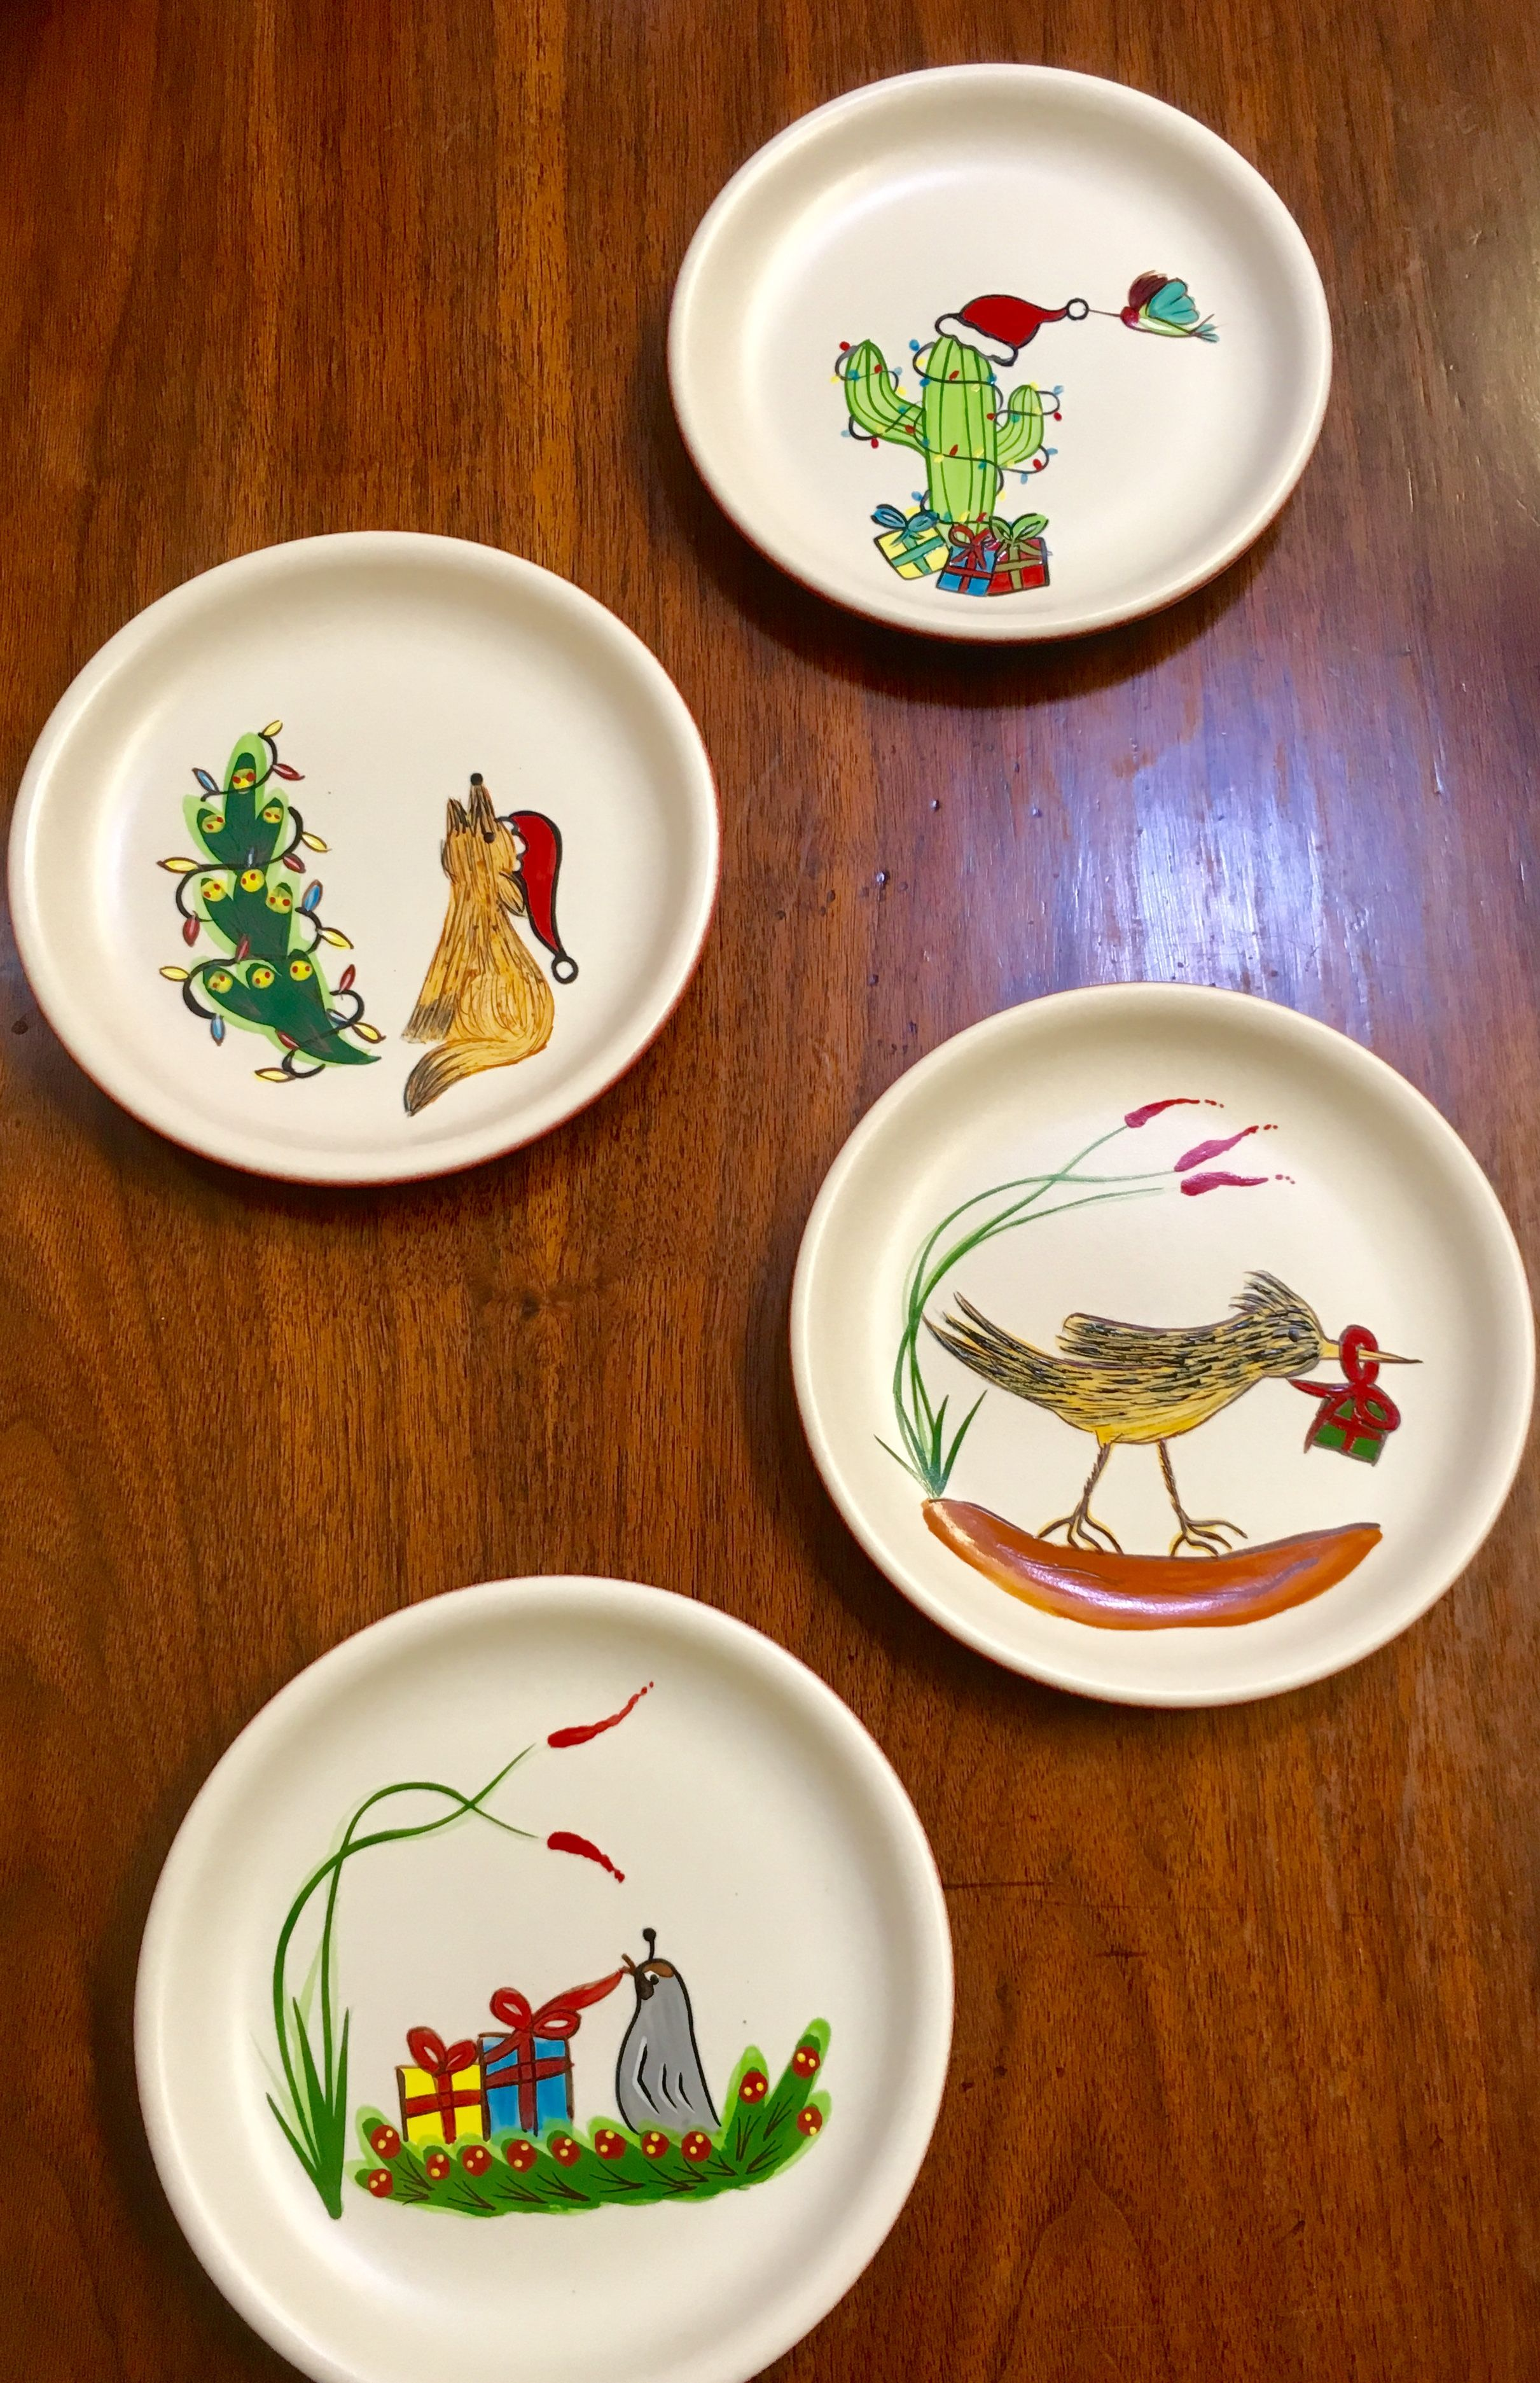 Southwestern Ceramic Plate Set Holiday With Images Holiday Plates Plate Sets Plates